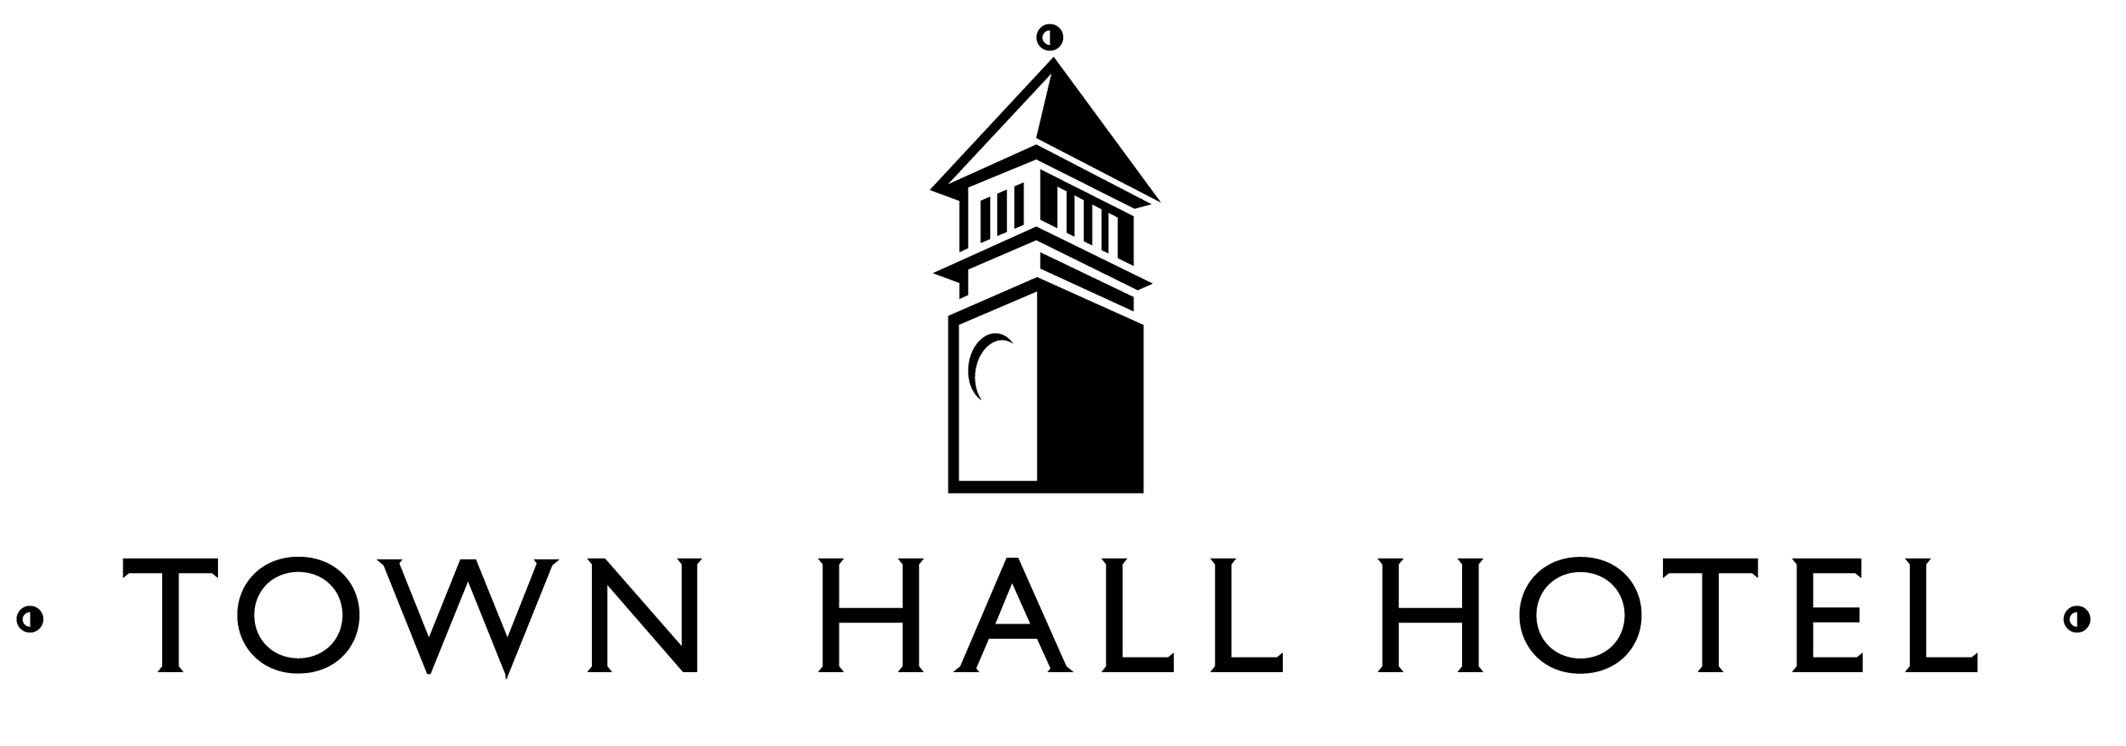 Town Hall Hotel Logo and Images